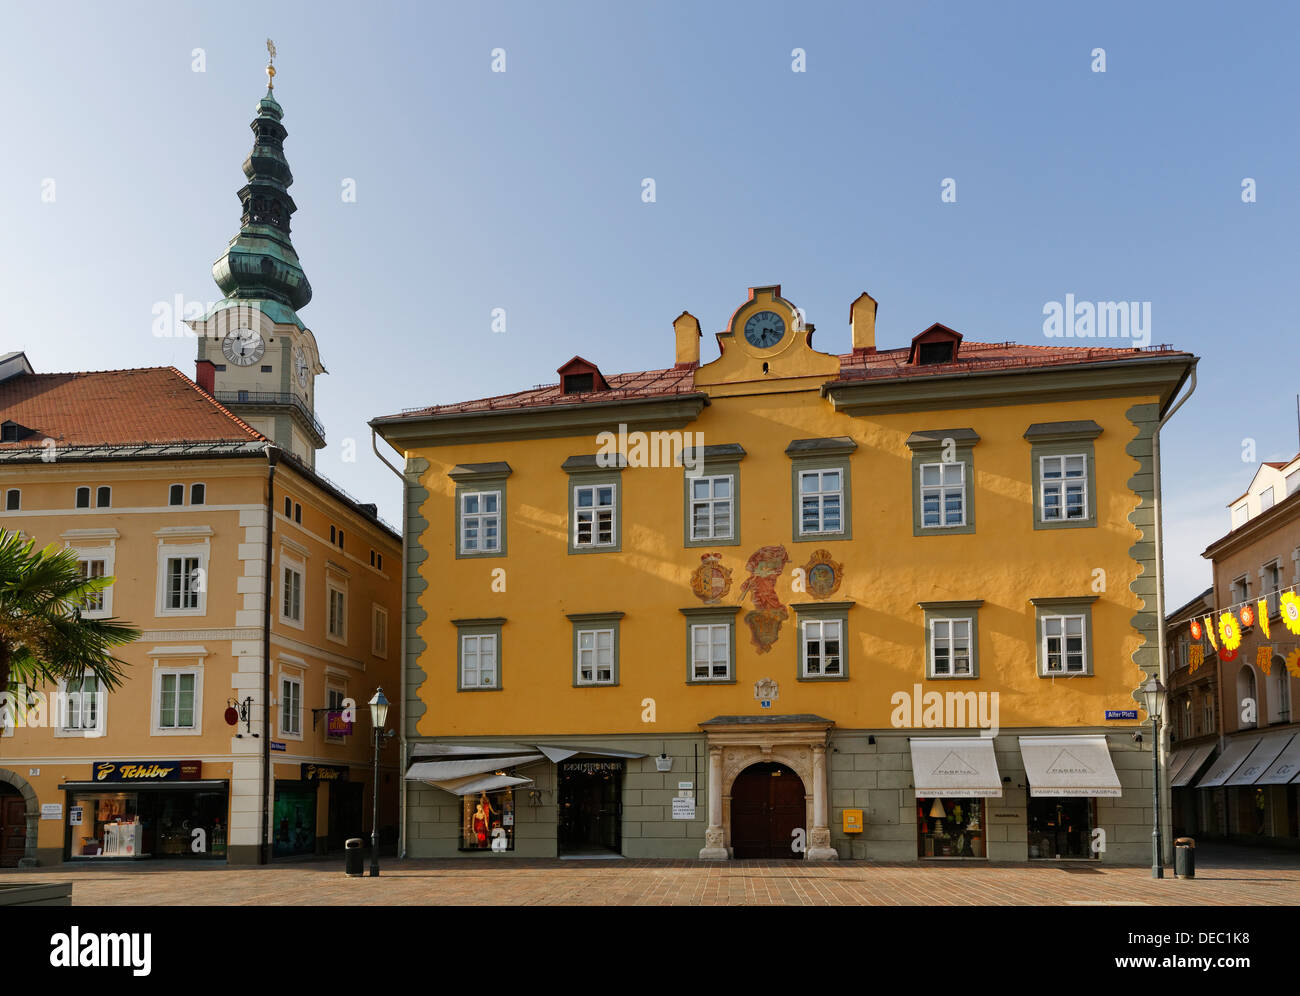 Old Town Hall, Alter Platz square, historic center, Klagenfurt, Carinthia, Austria - Stock Image